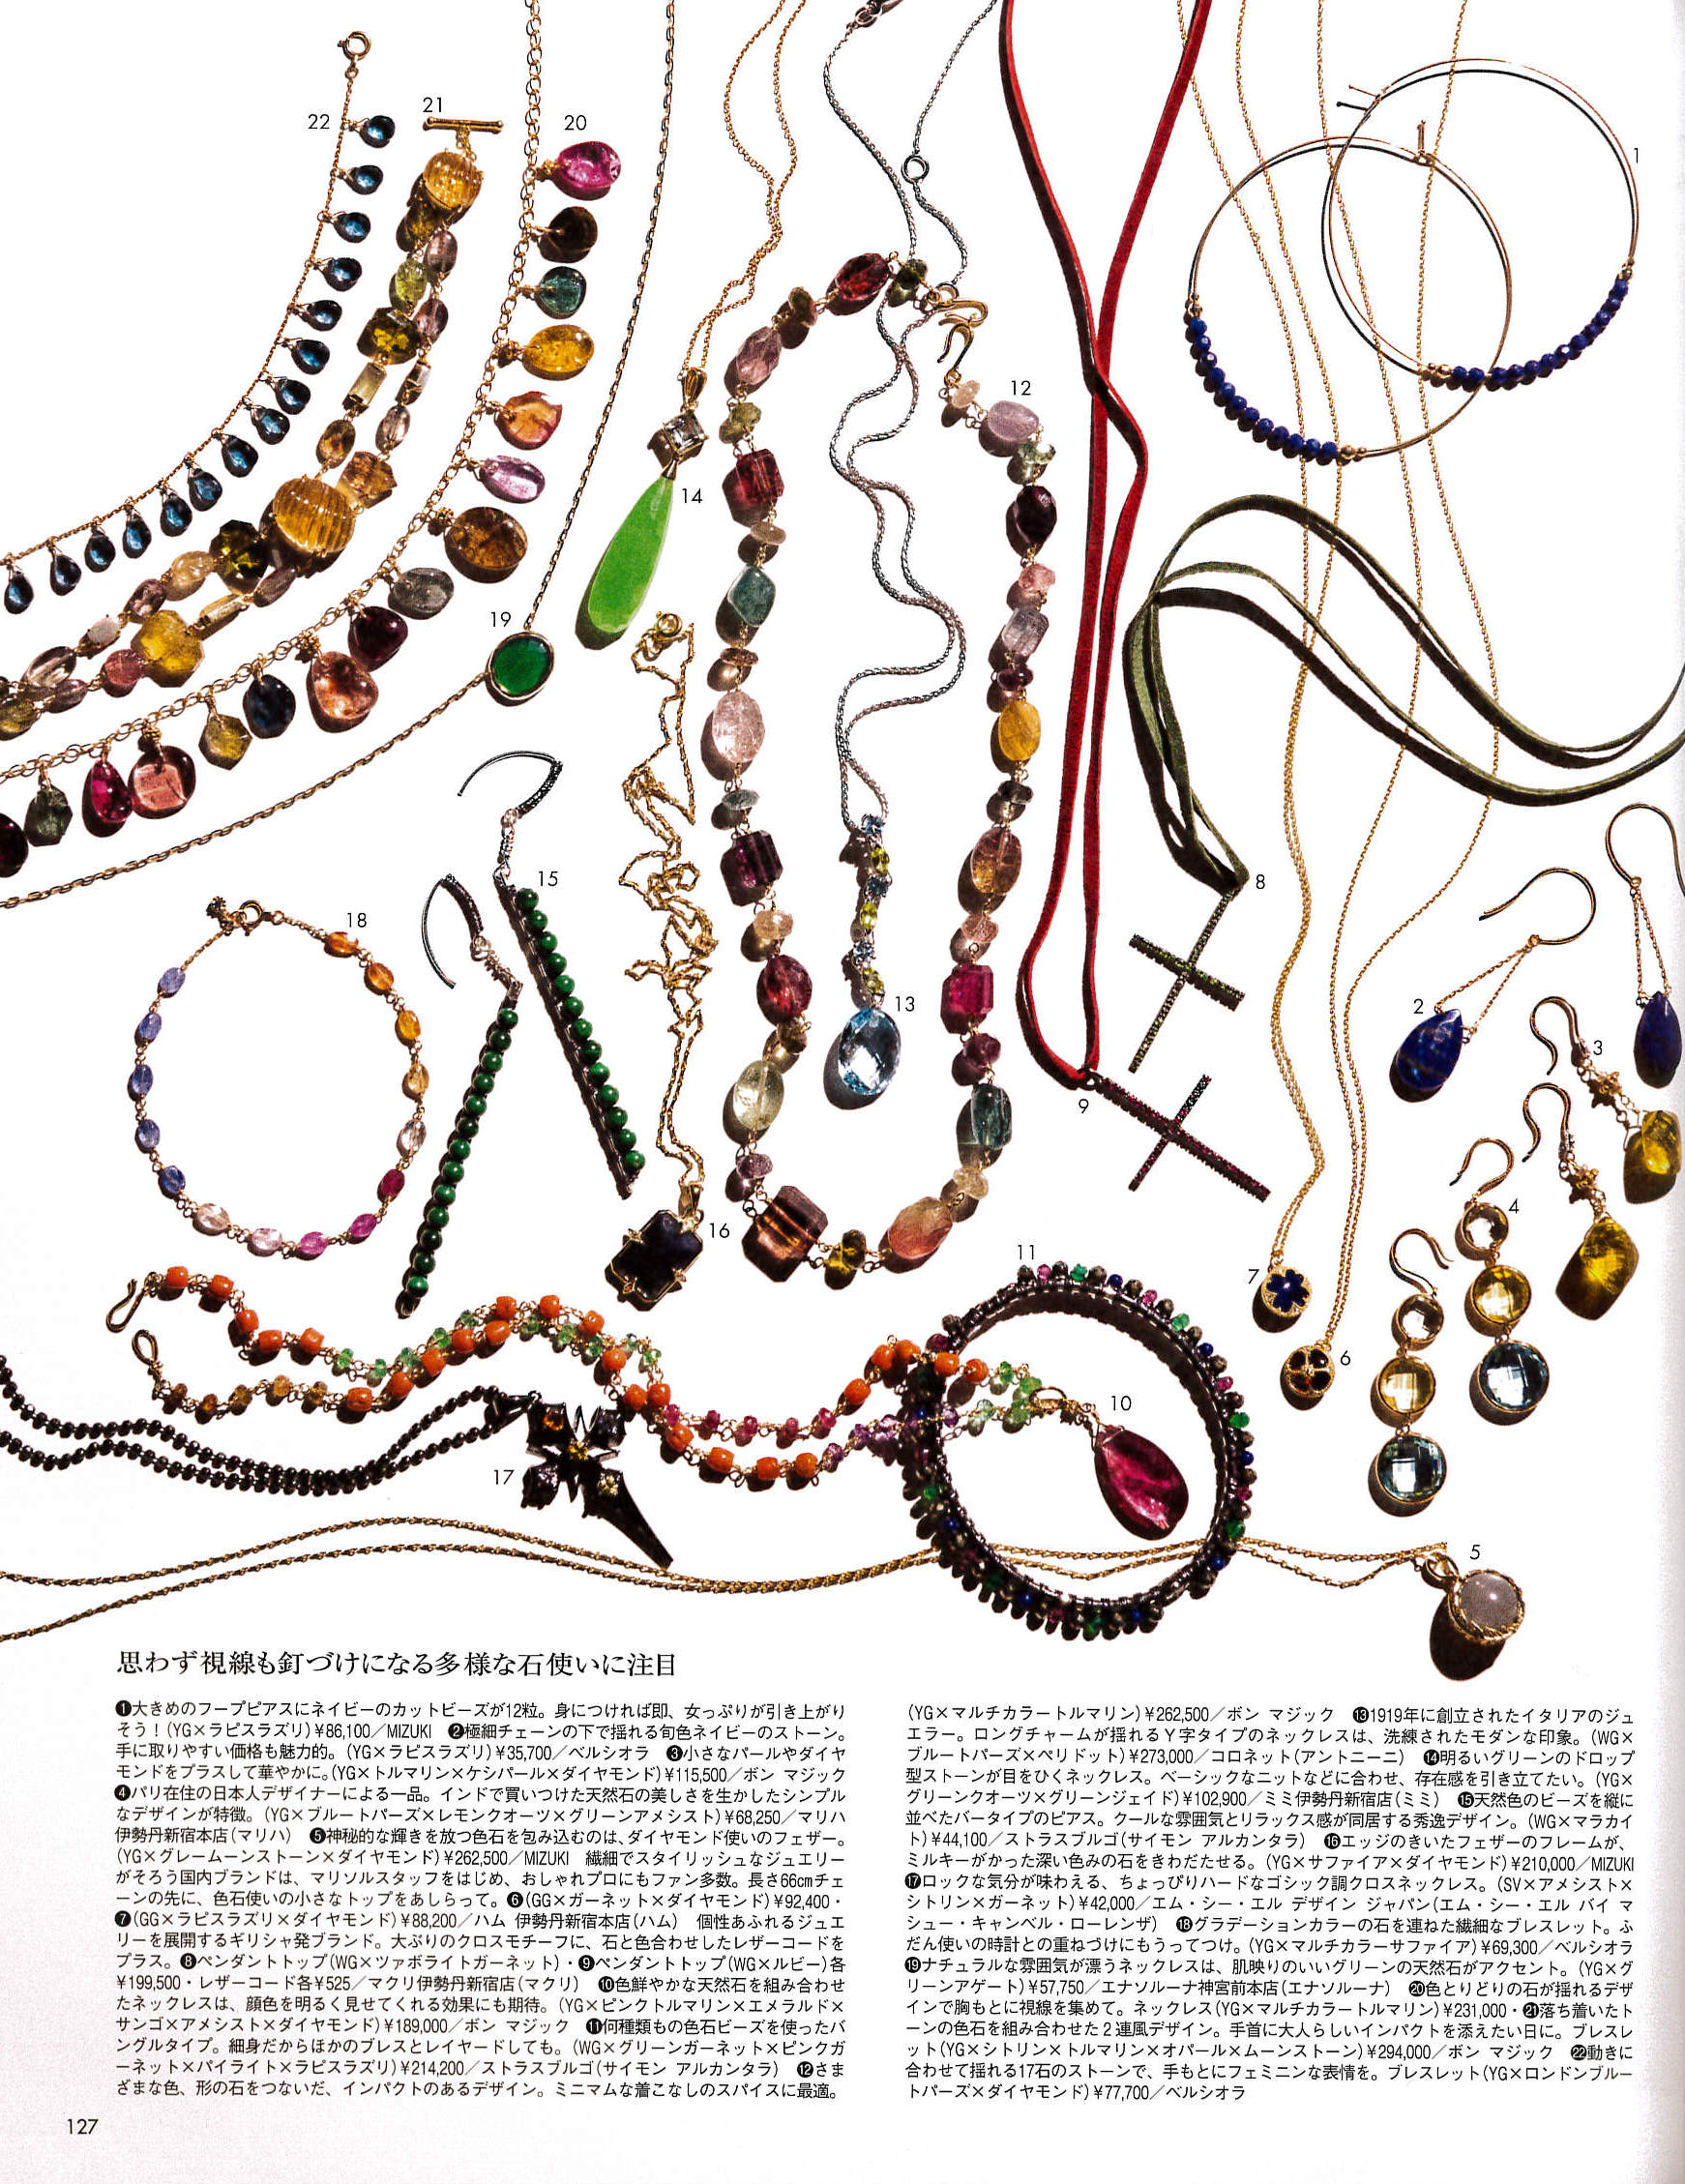 Marisol Magazine Japan Dec 2013 issue: White gold bangle with various stones, sterling silver and malachite bar earrings